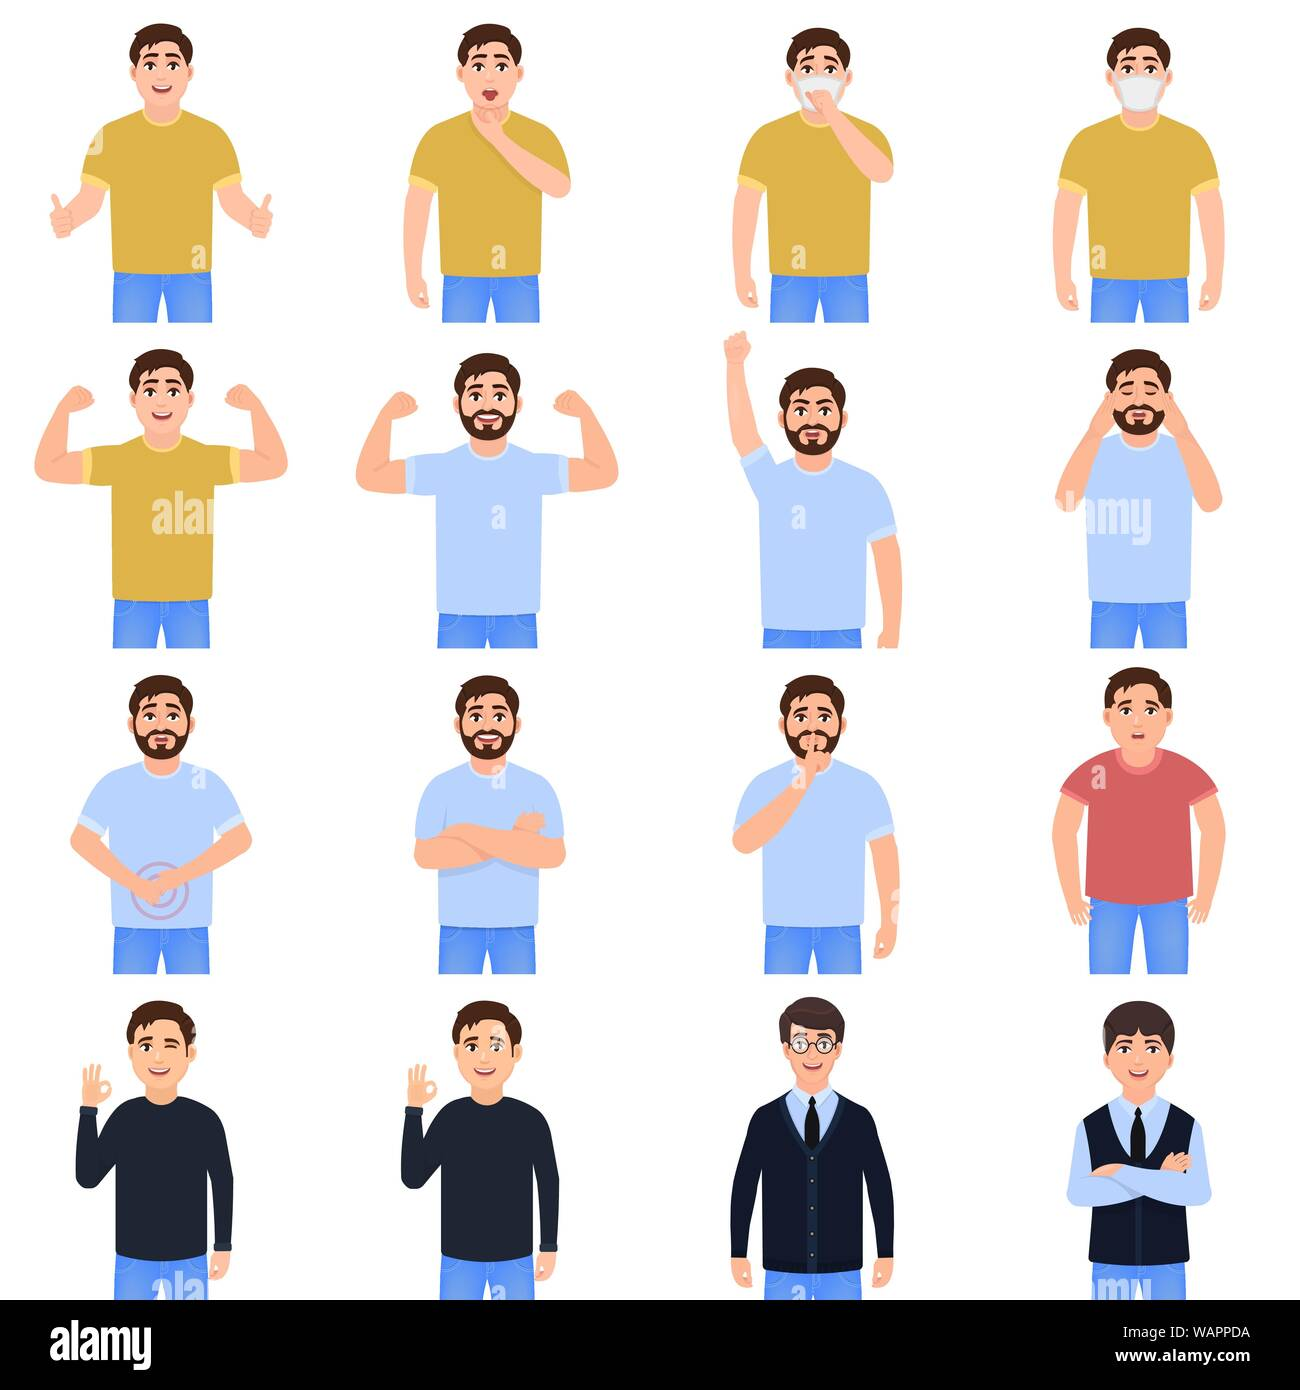 Men avatars icon set, guys with different moods, cartoon characters, people in everyday life vector illustration Stock Vector